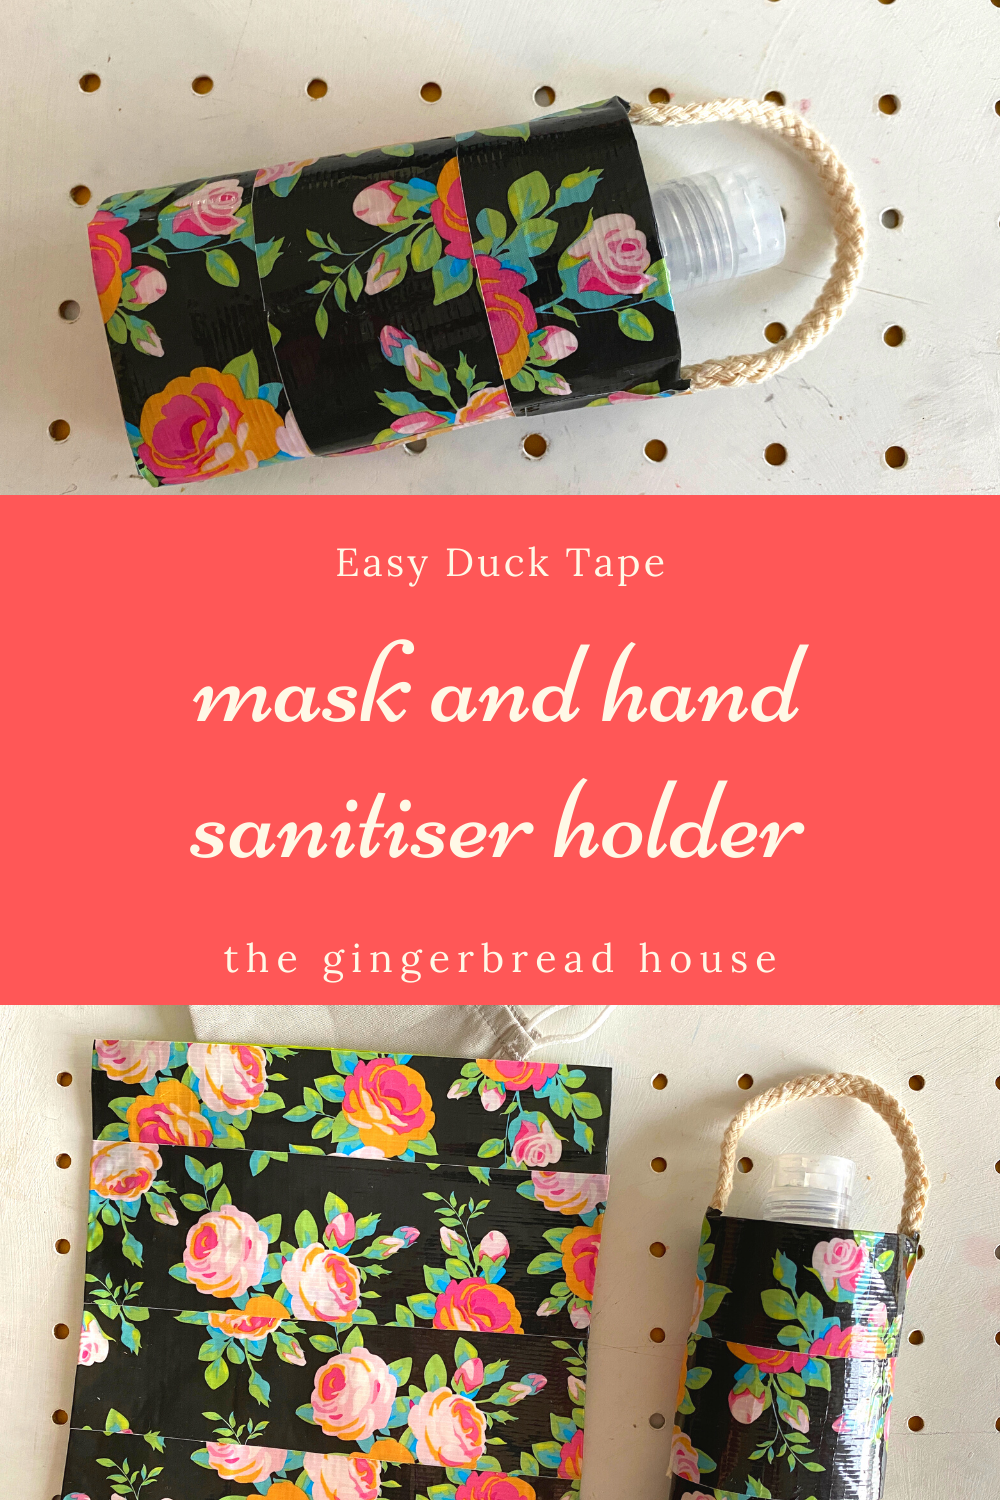 Easy Duck Tape hand sanitiser holder